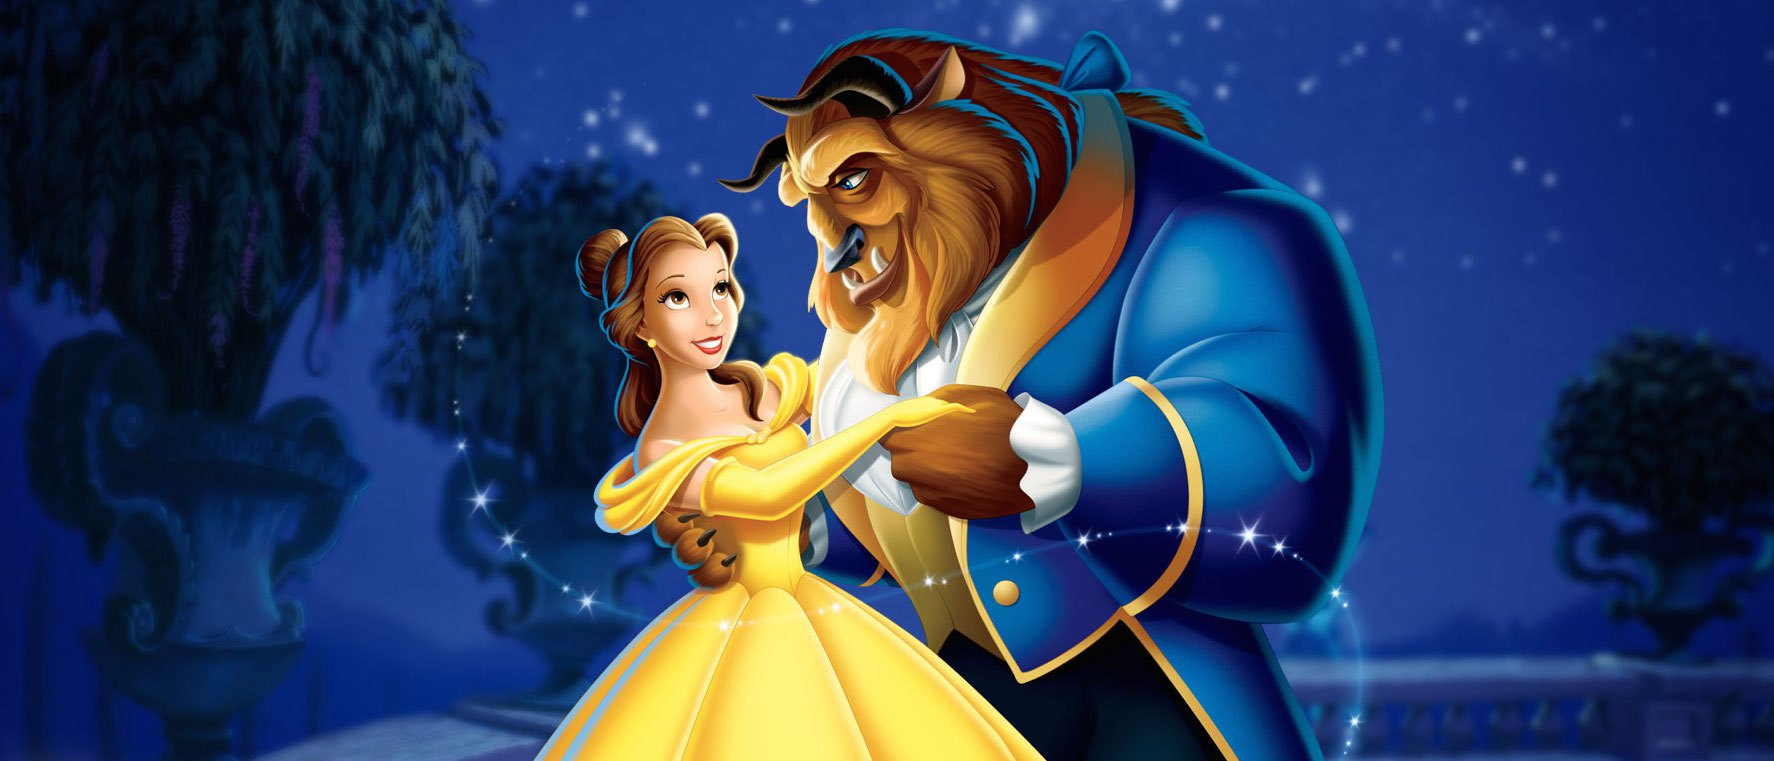 The beauty beast and pictures